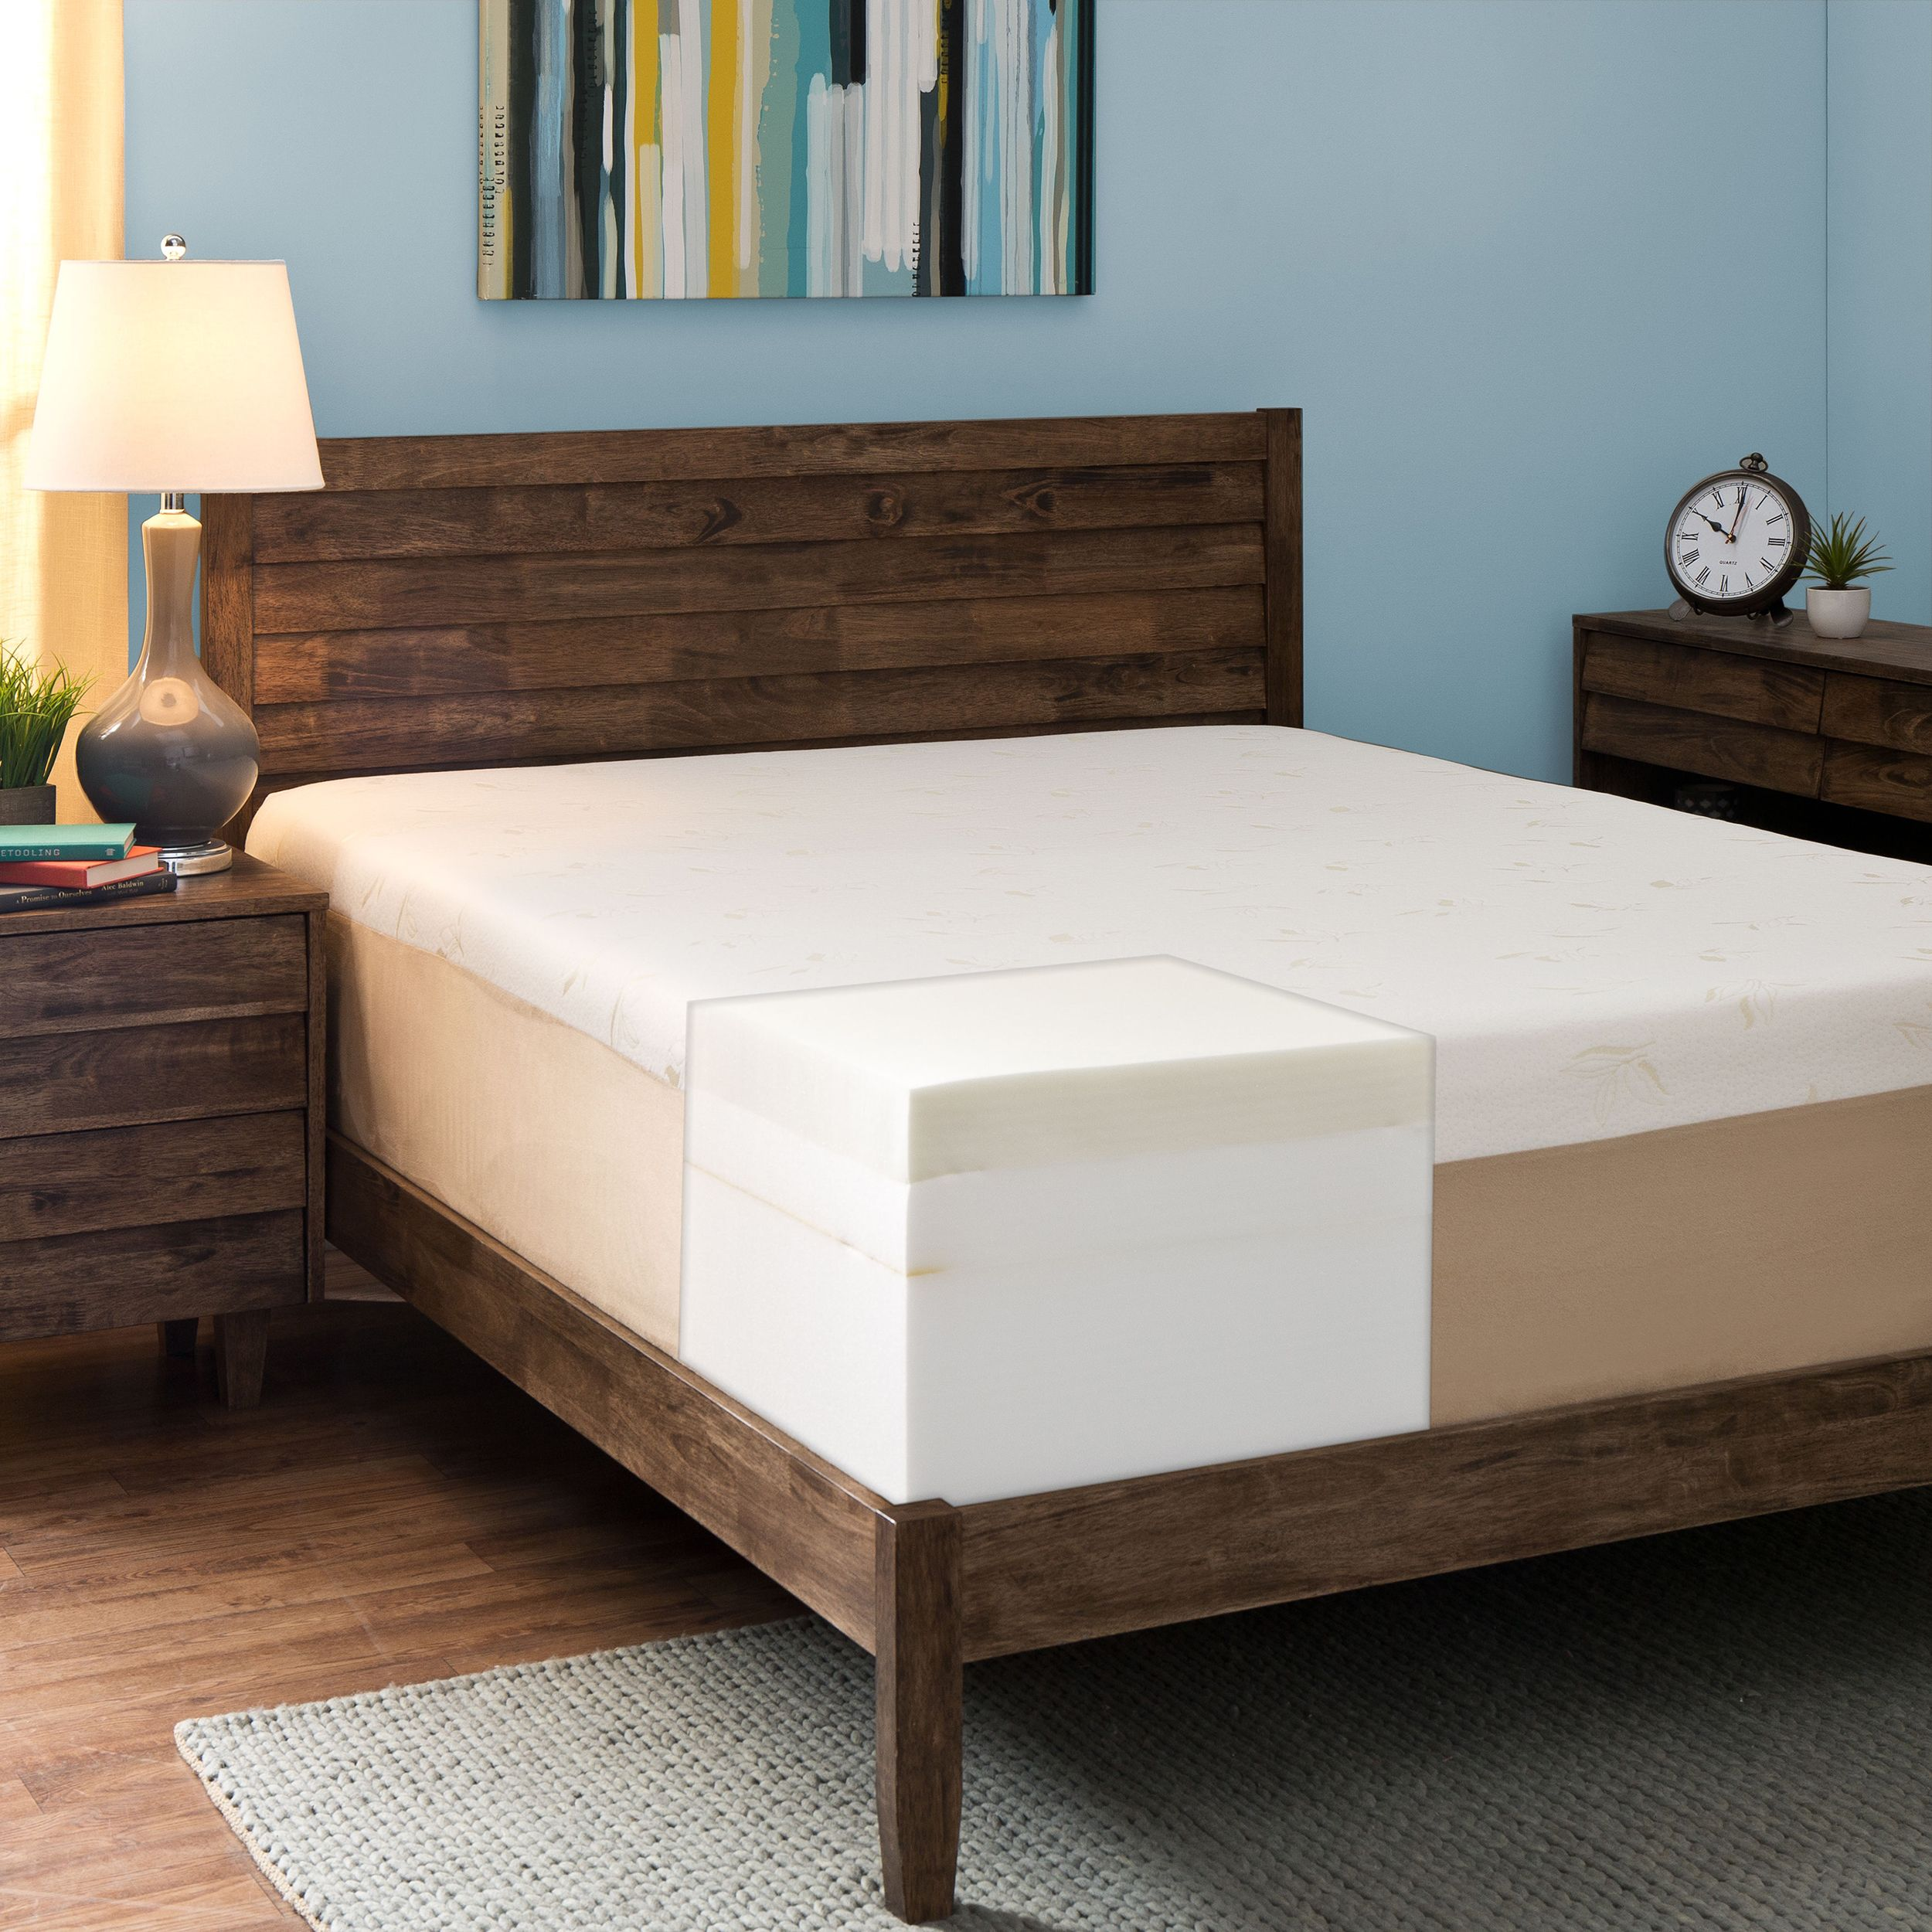 Enjoy Body Cradling Comfort With This Thick King Size Memory Foam